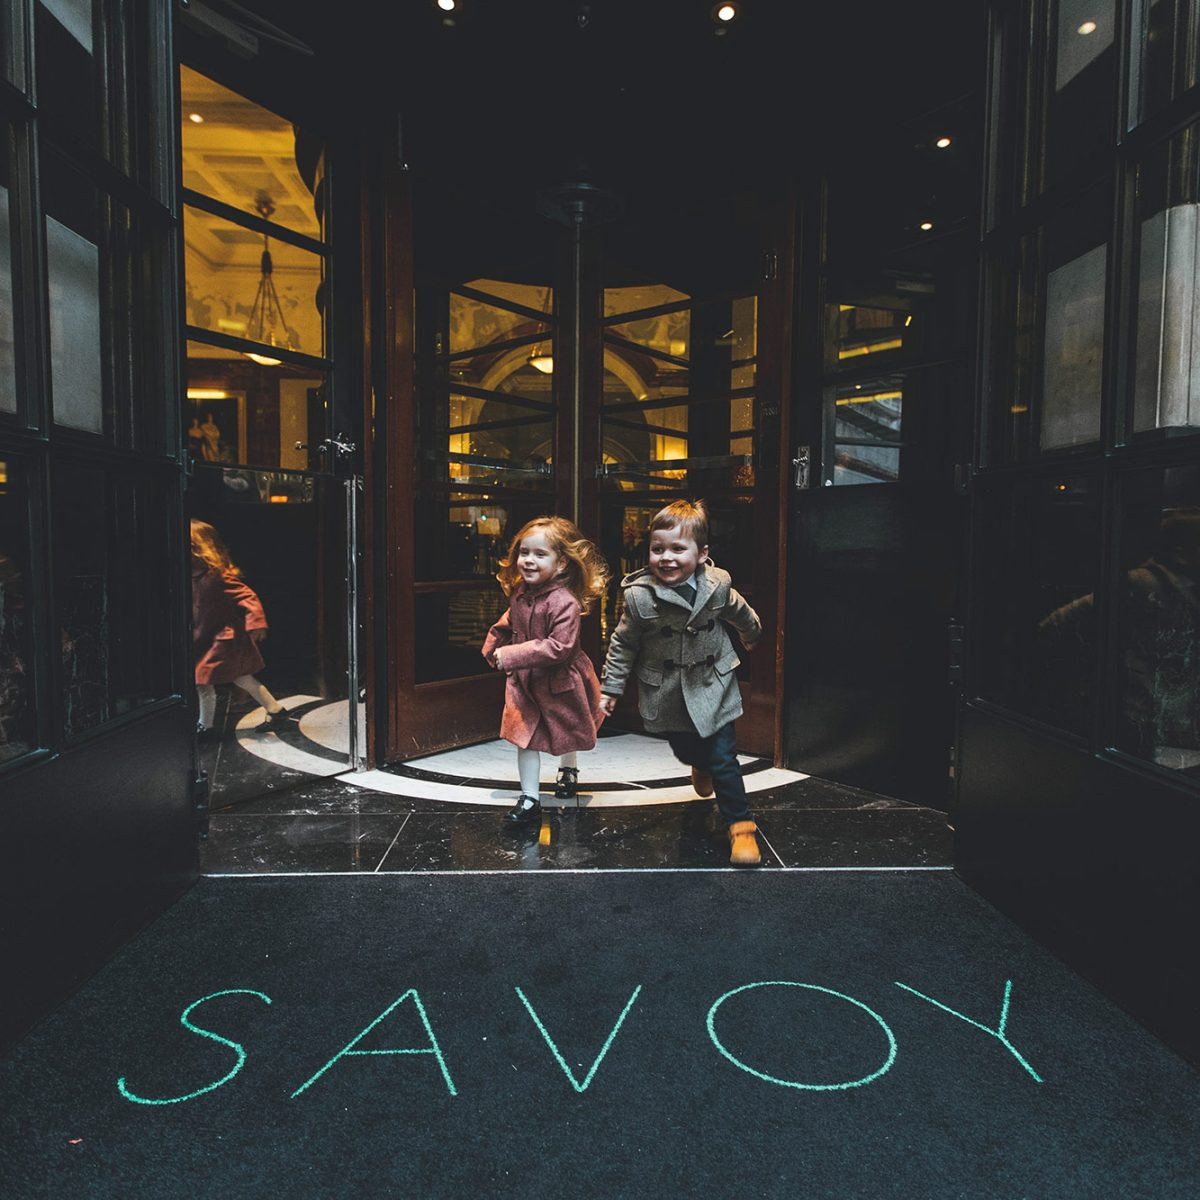 Children running out of The Savoy entrance